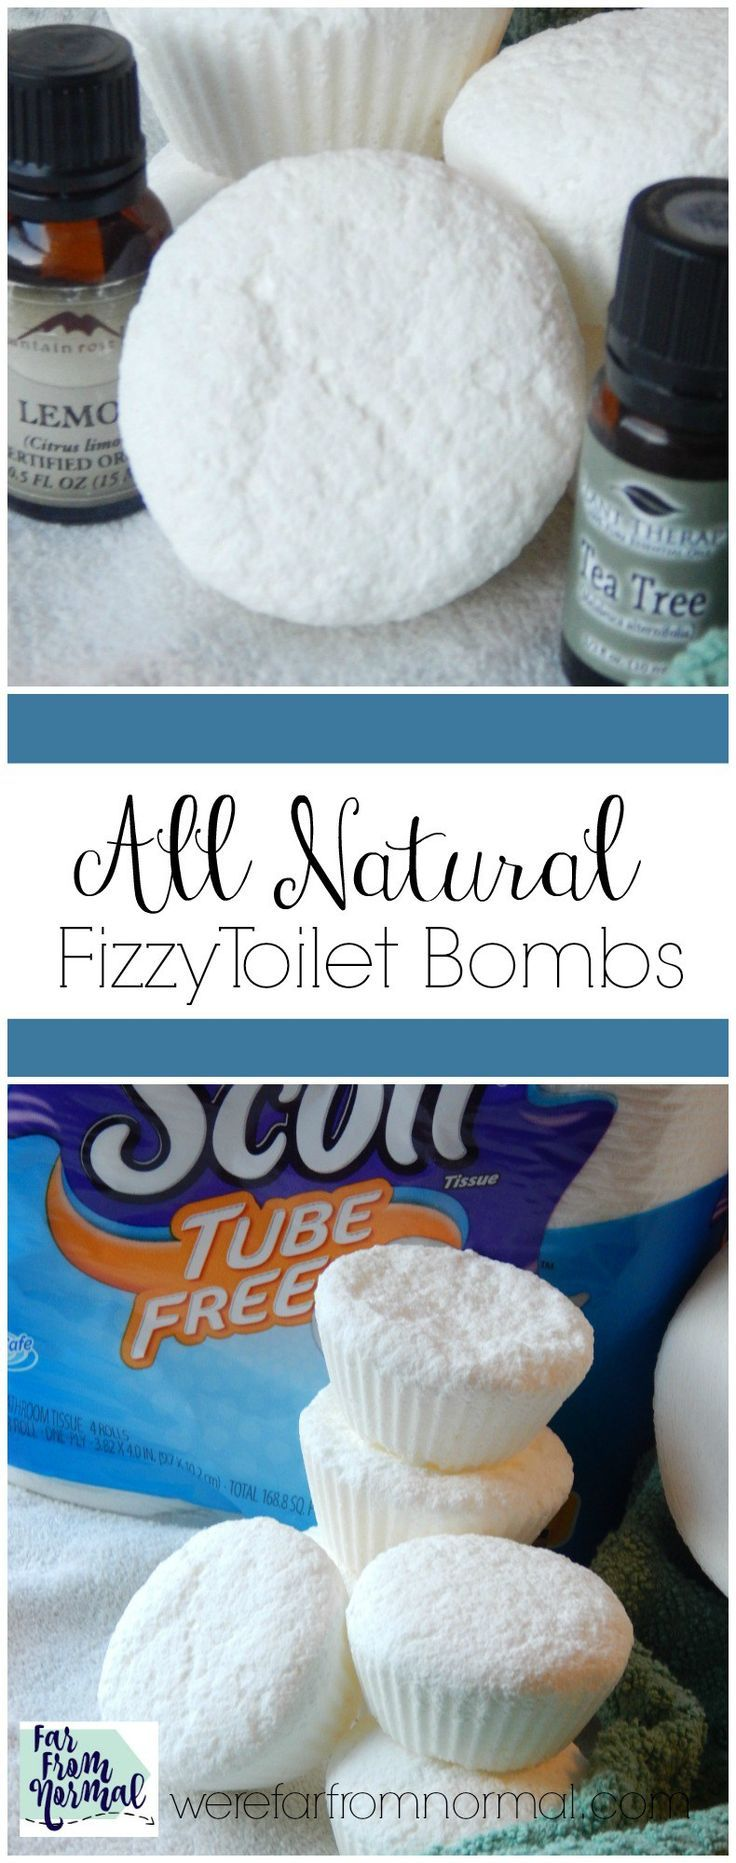 Keep your bathroom clean and fresh chemical free! These toilet bombs have essential oils and fizz to clean quickly and easily! #ad #TubeFree